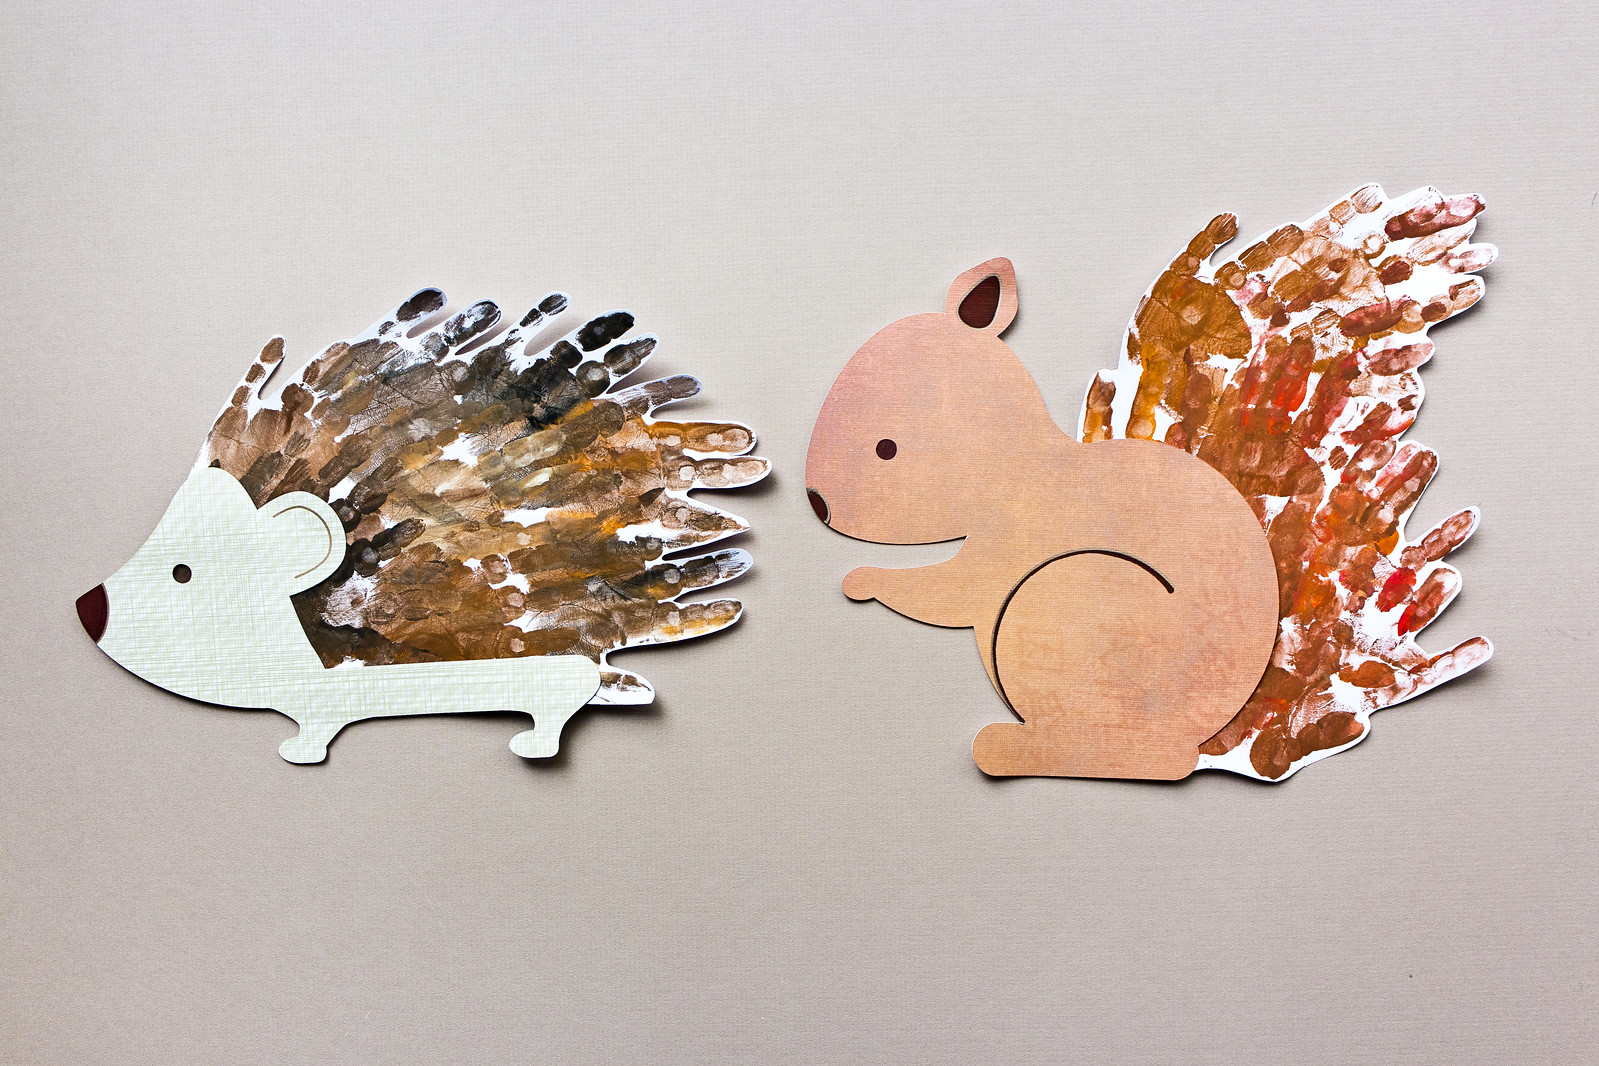 Handprint hedgehog and squirrel art activity for toddlers, with free PDF download for cutting by hand and free svg for cutting machines